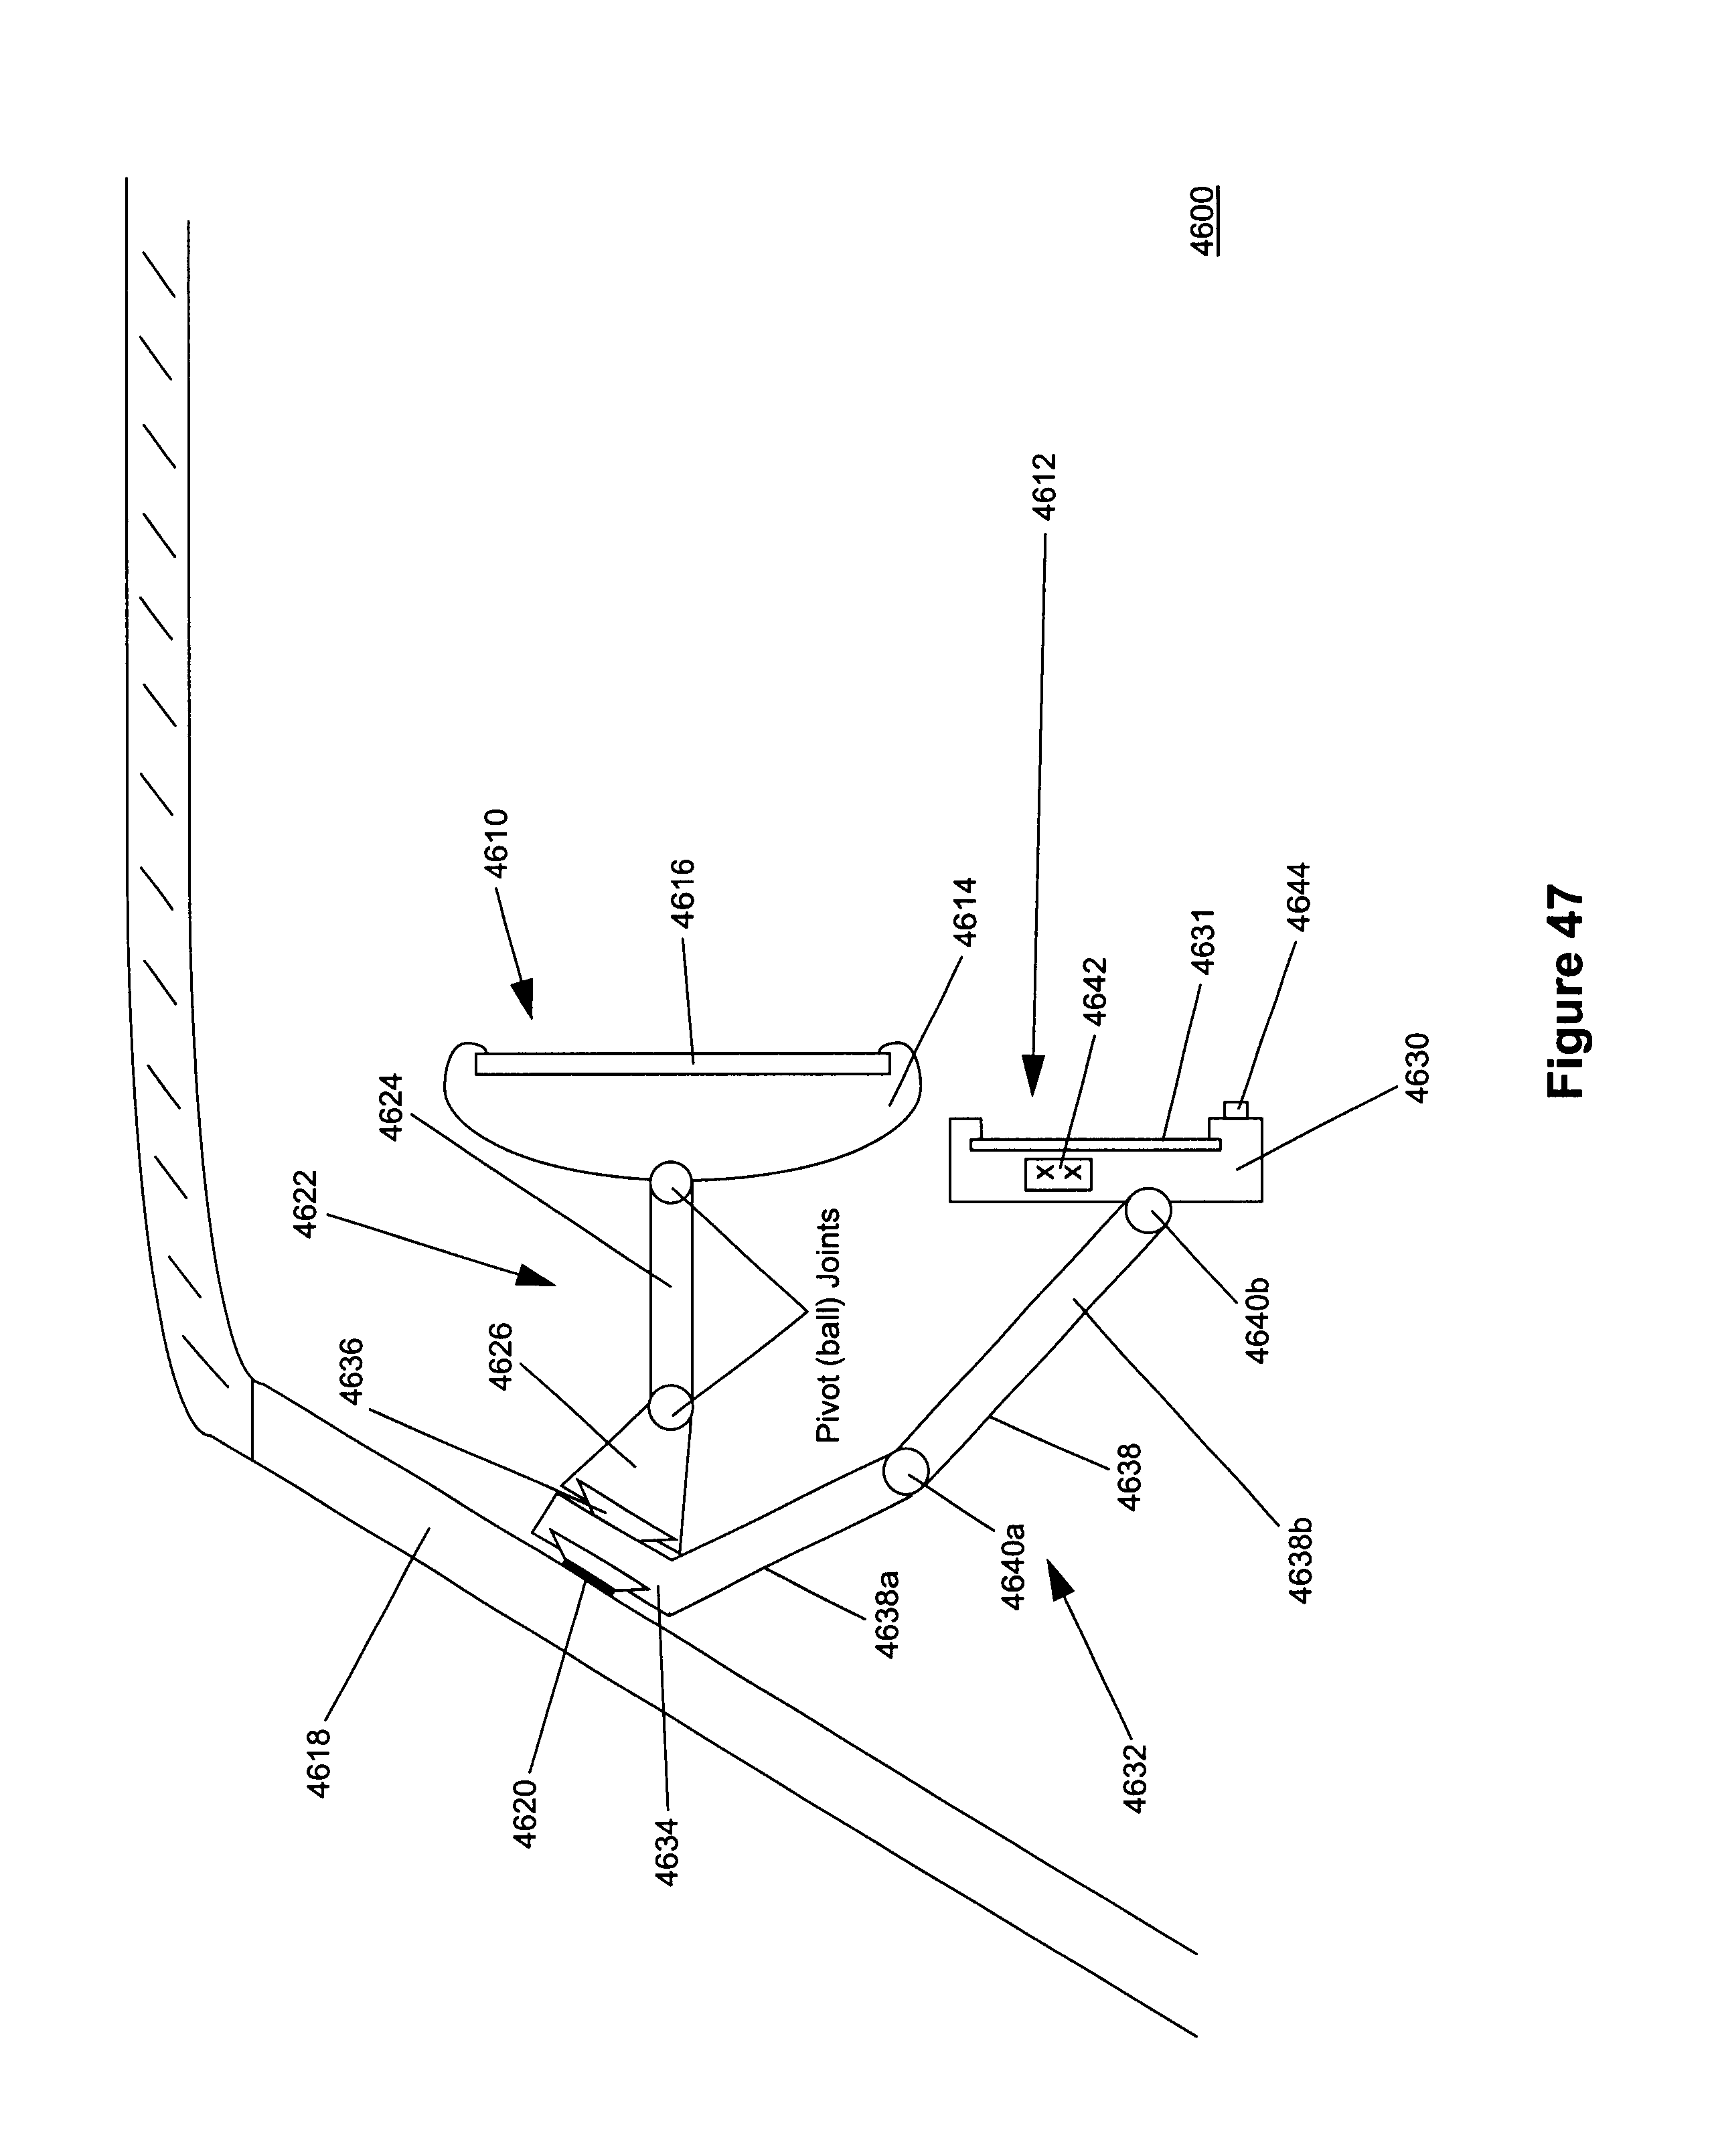 patent us 6 690 268 b2 GM Wiring Harness Diagram patent images